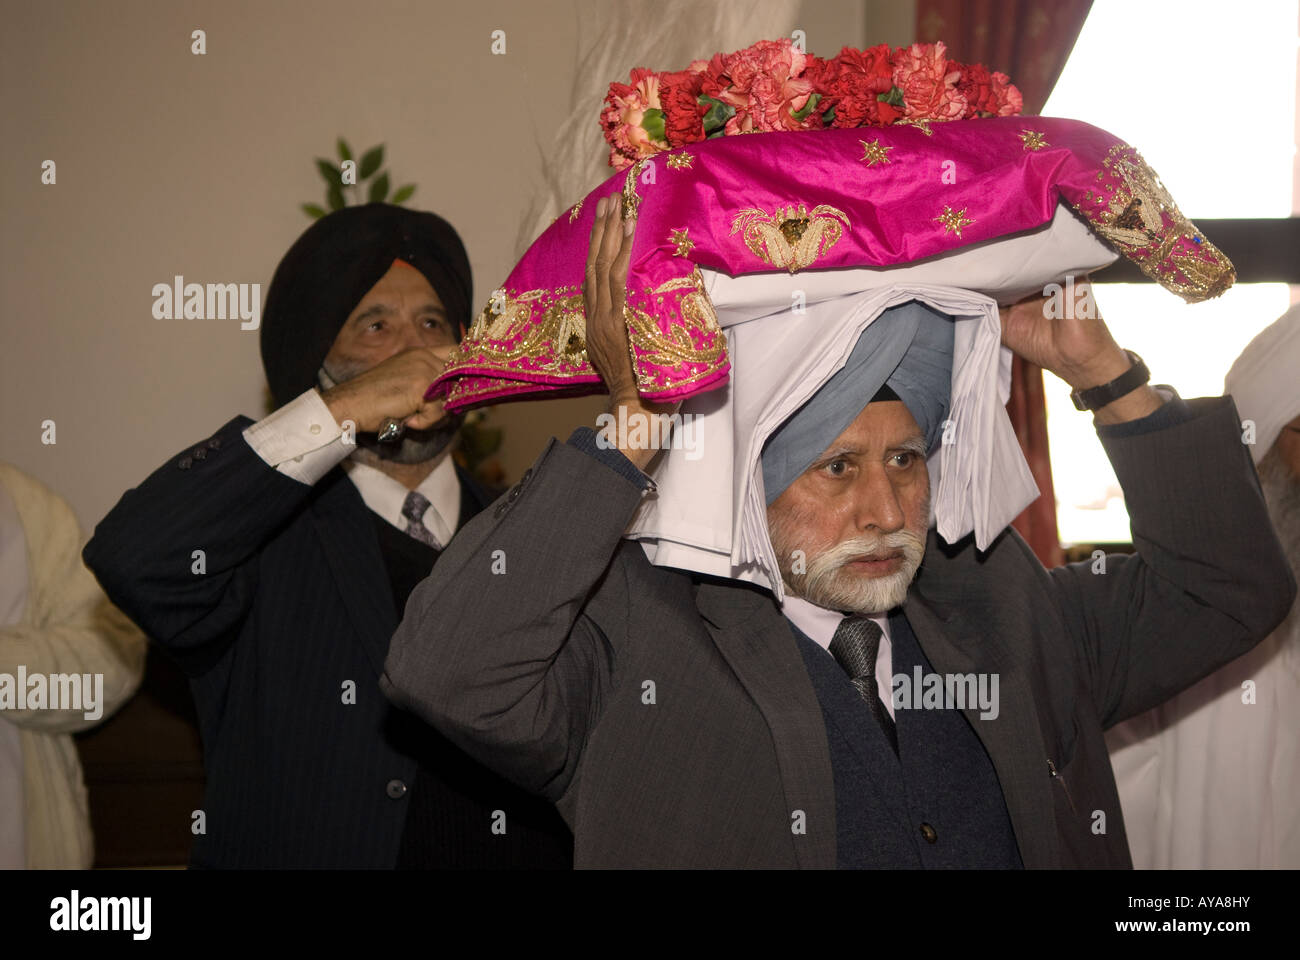 Sikhs inside temple (Gurdwara) with the Holy scripture on the festival of Vaisakhi, Siri Guru Singh Sabha, Hounslow, - Stock Image